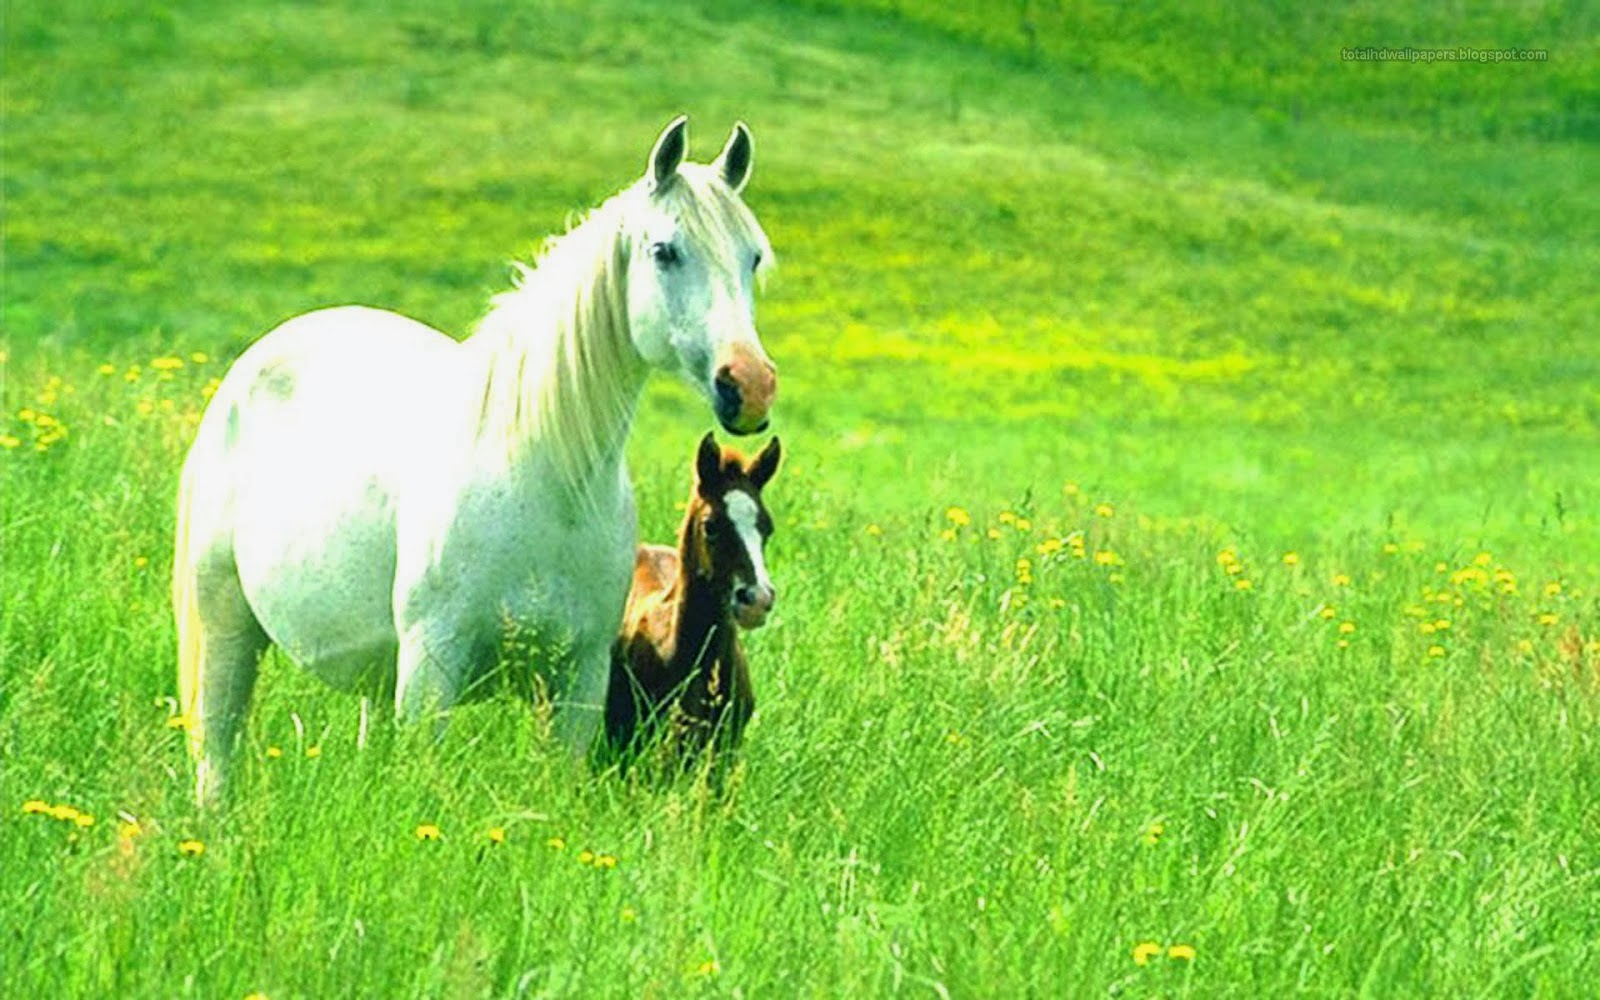 Most Beautiful Horse Pictures and Images